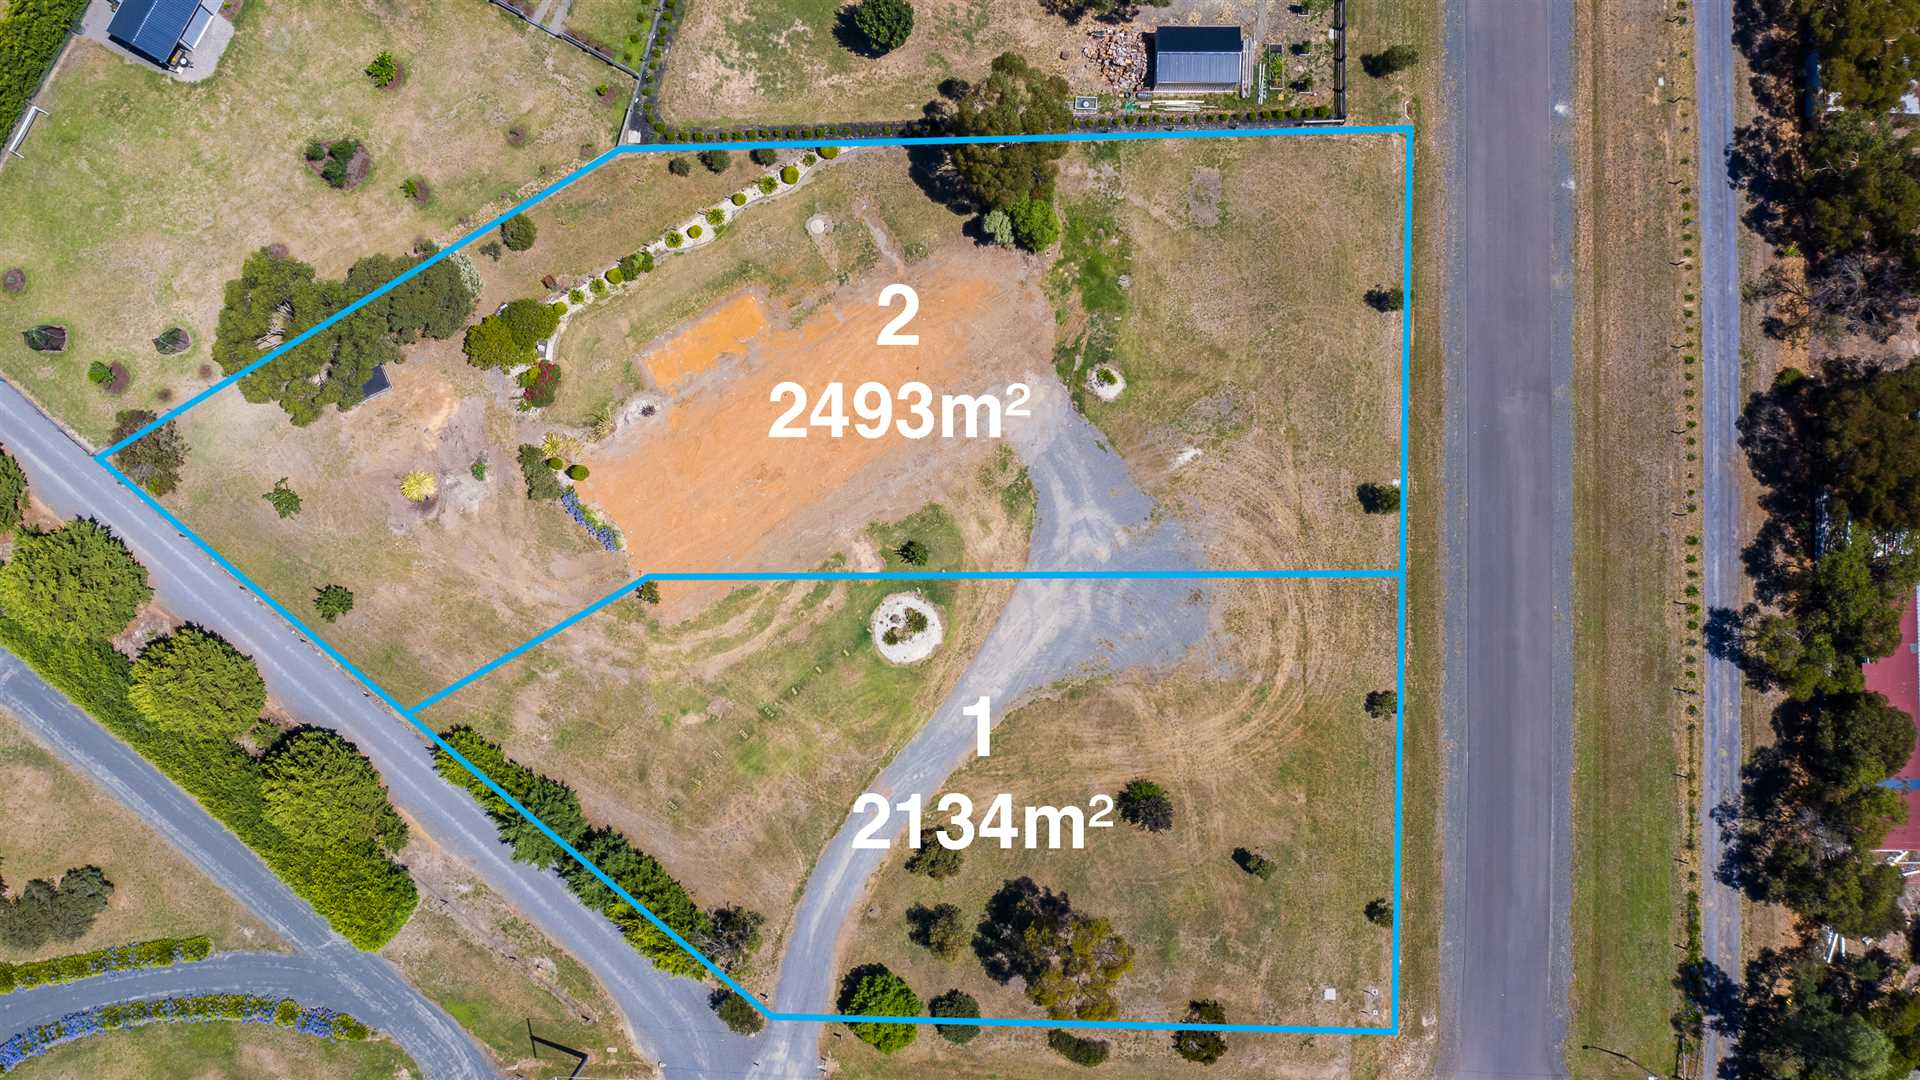 2 Lots Available - The Choice is Yours